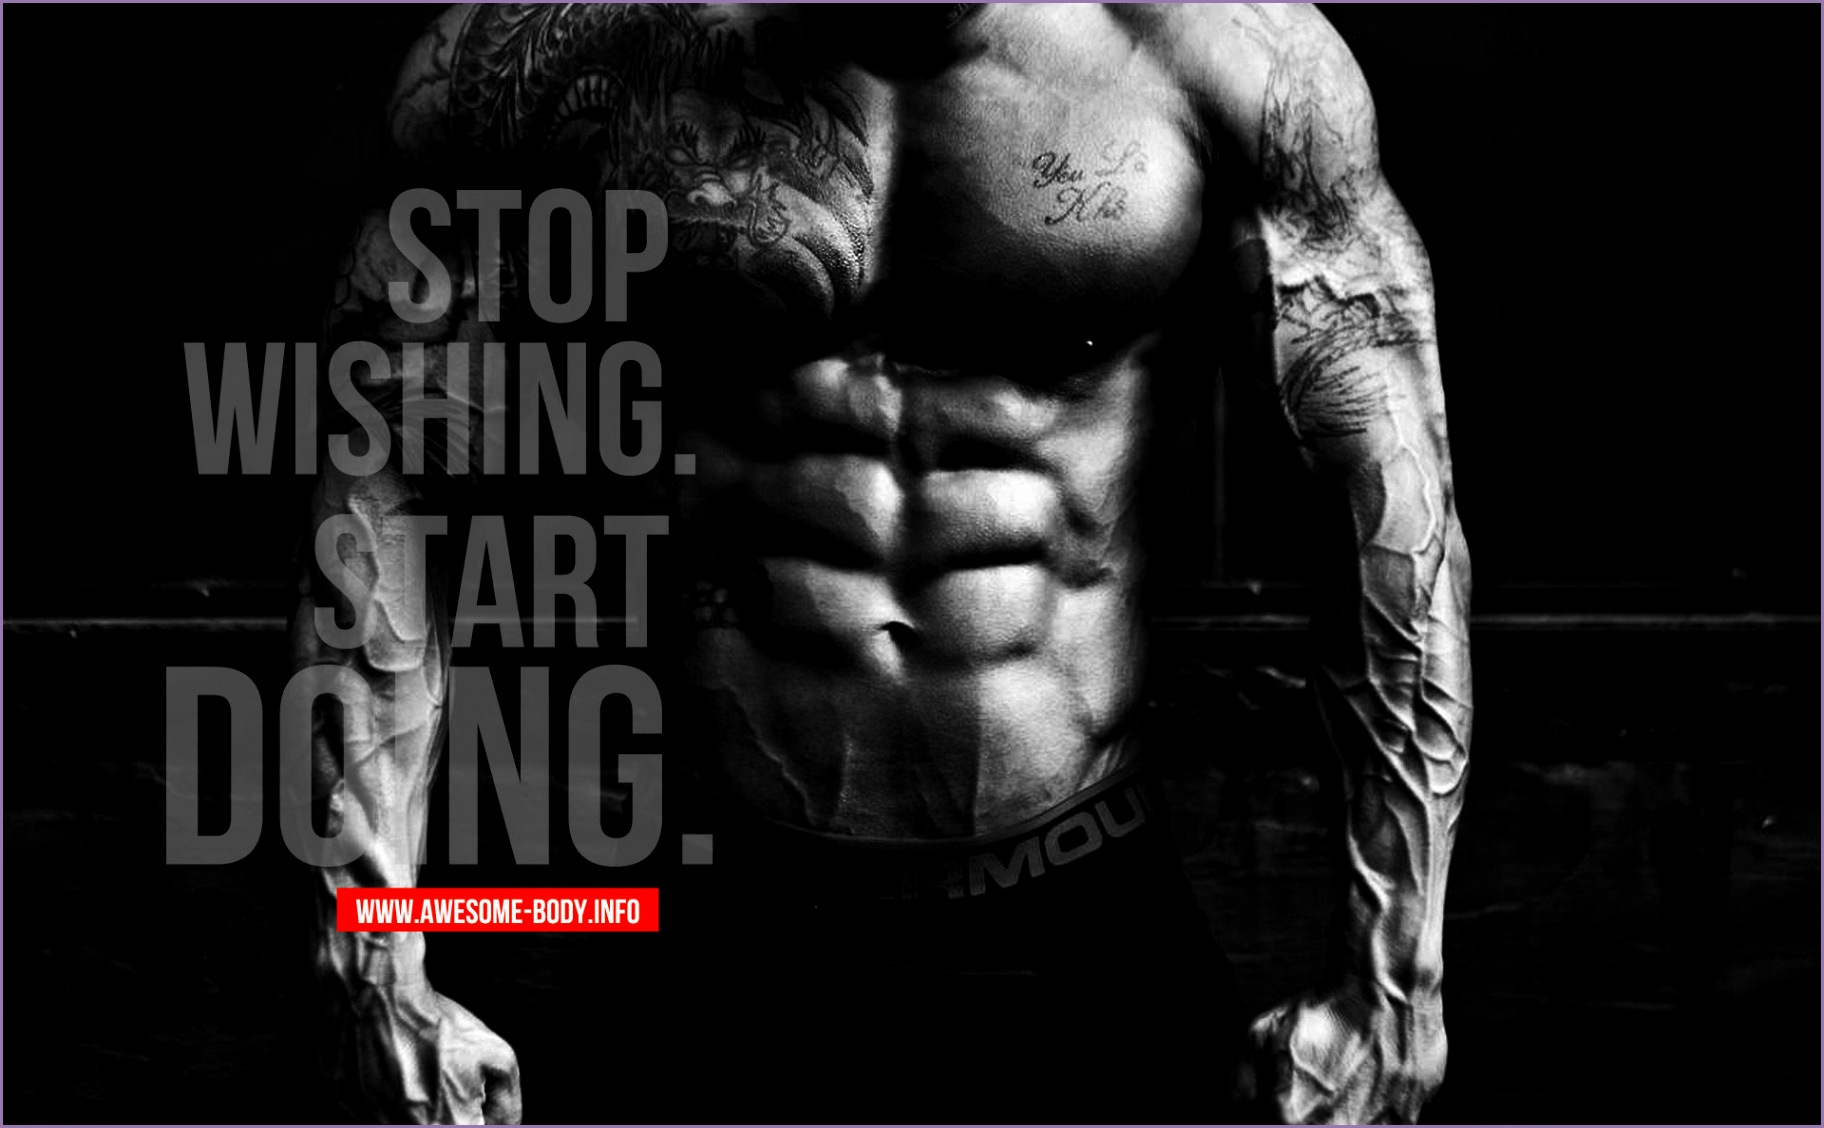 Arnold Schwarzenegger Wallpaper Quotes 8 Fitness Wallpaper For Android Work Out Picture Media